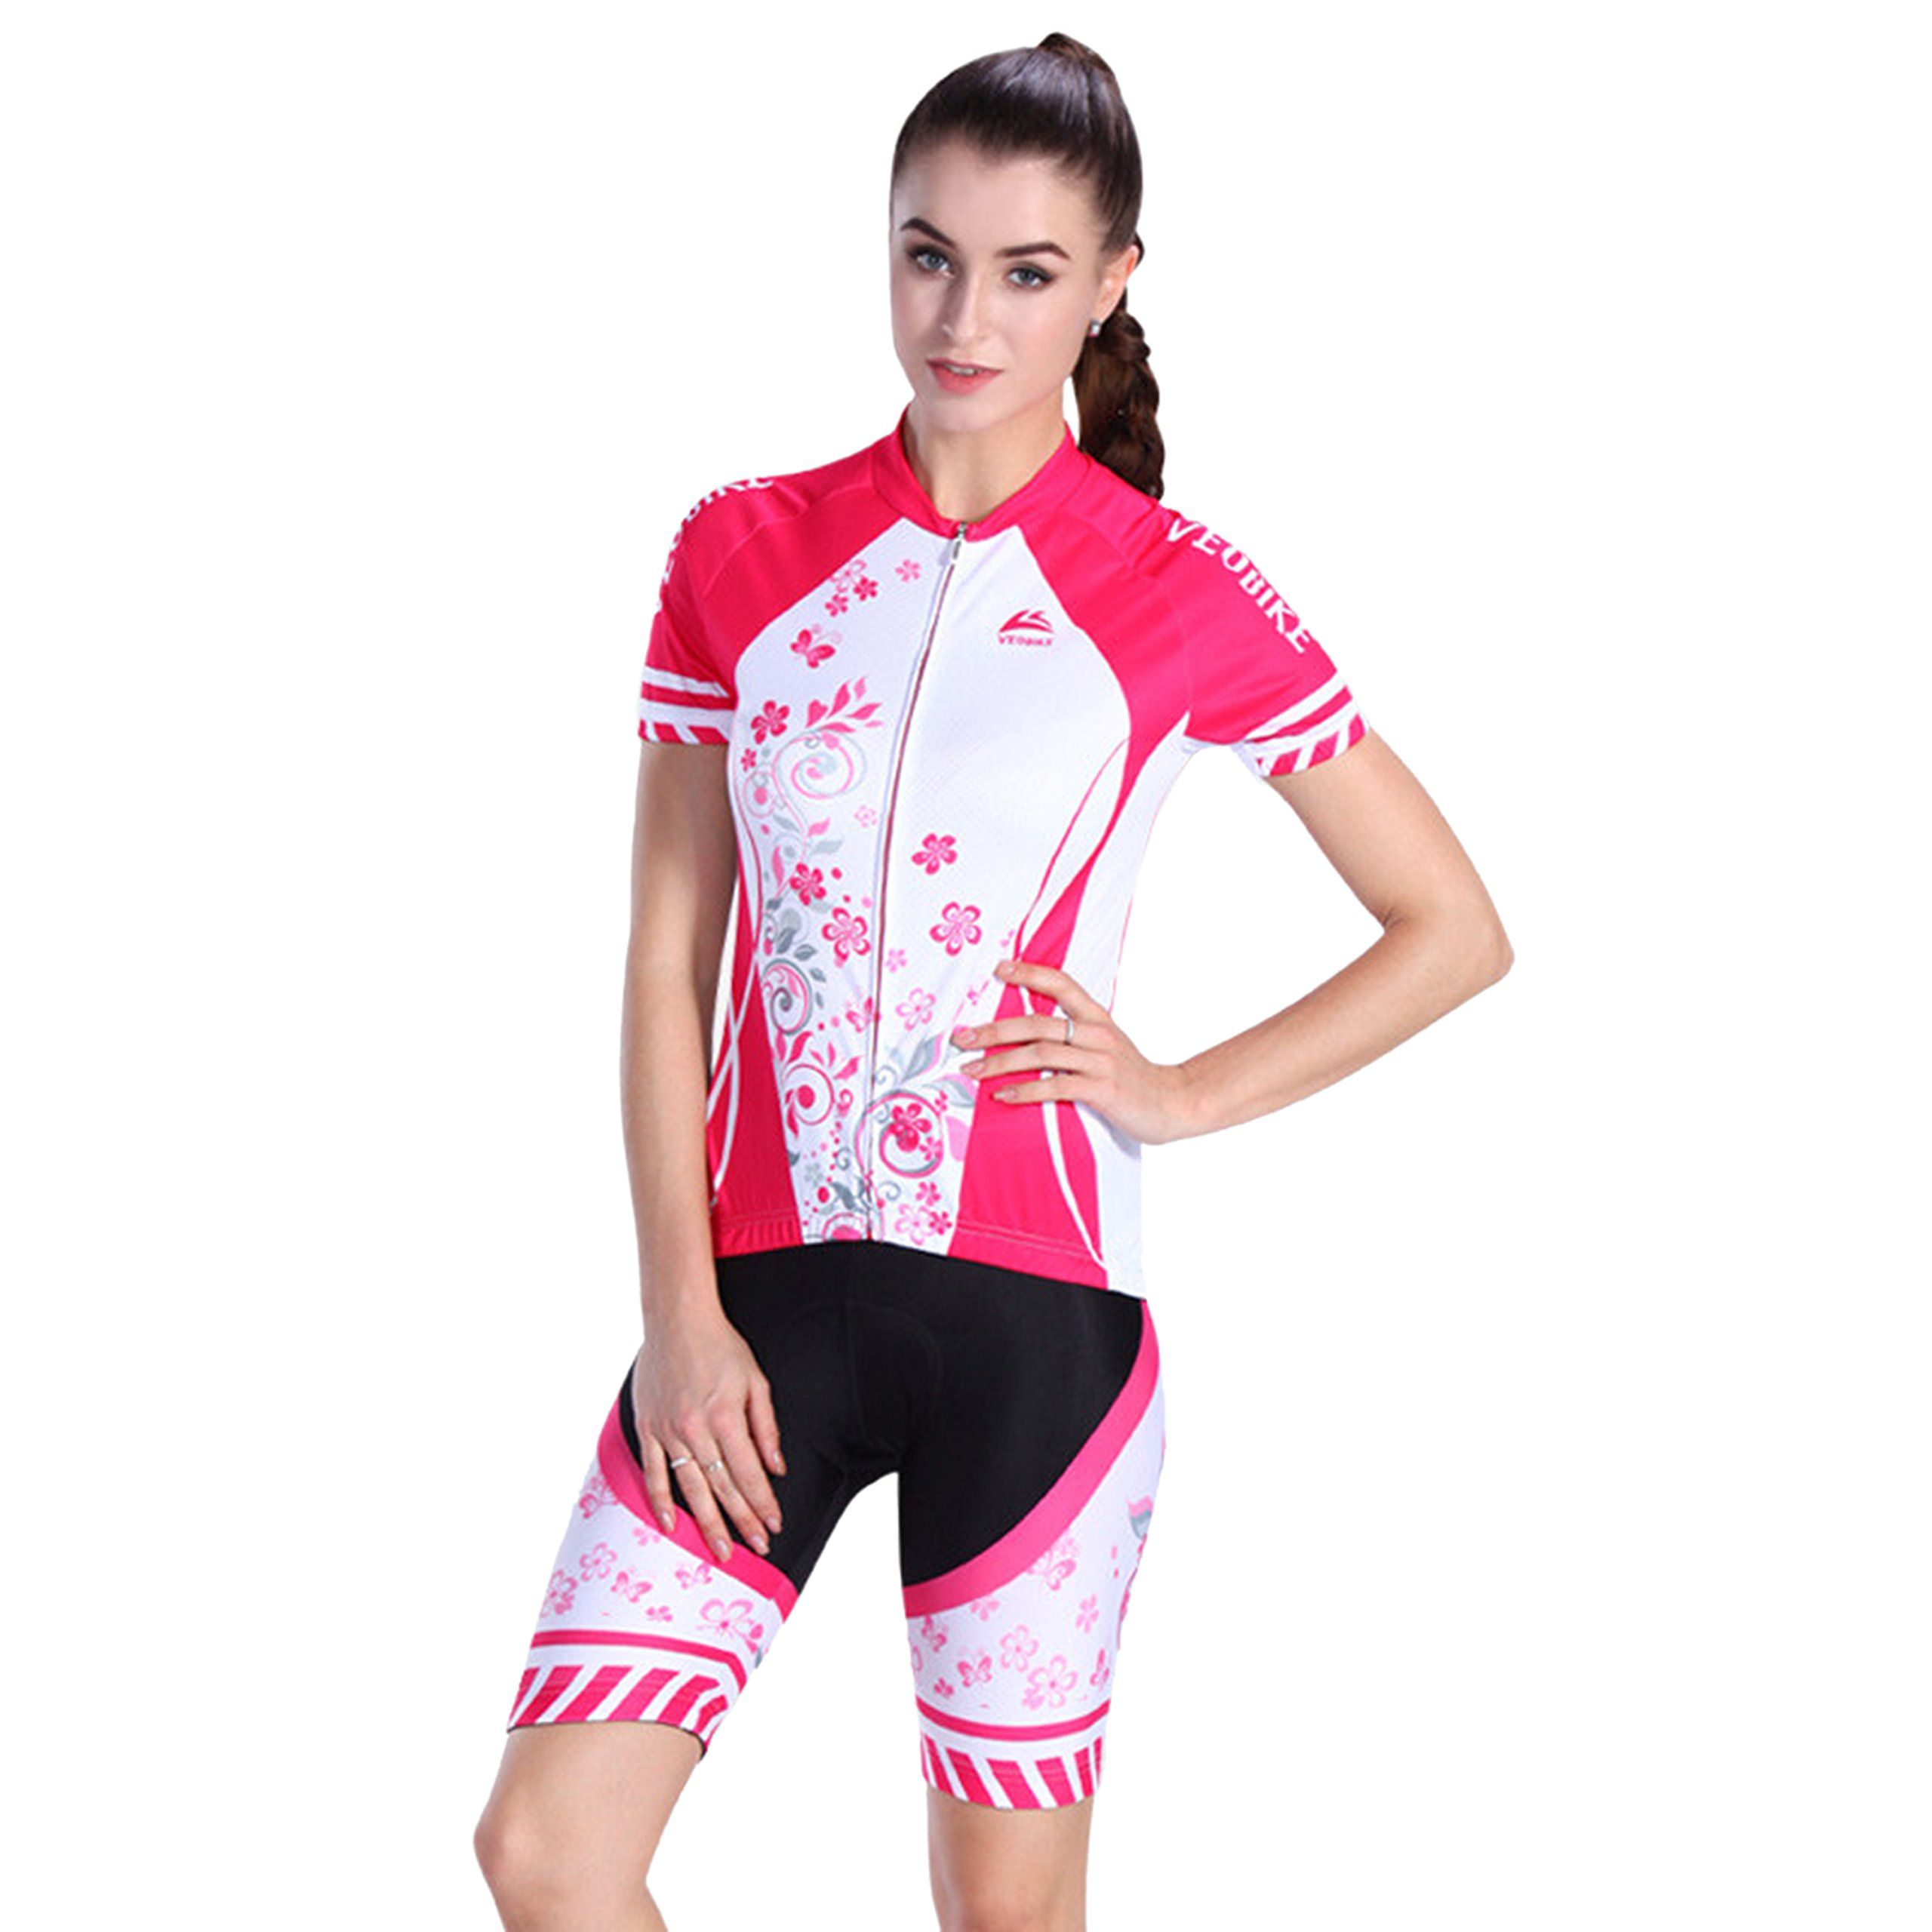 SUNVP Short Sleeve Cycling Jersey with 3D Gel Padded Quick Dry Outfits  Bicycle Sportswear Tops For 59fd6ba2f